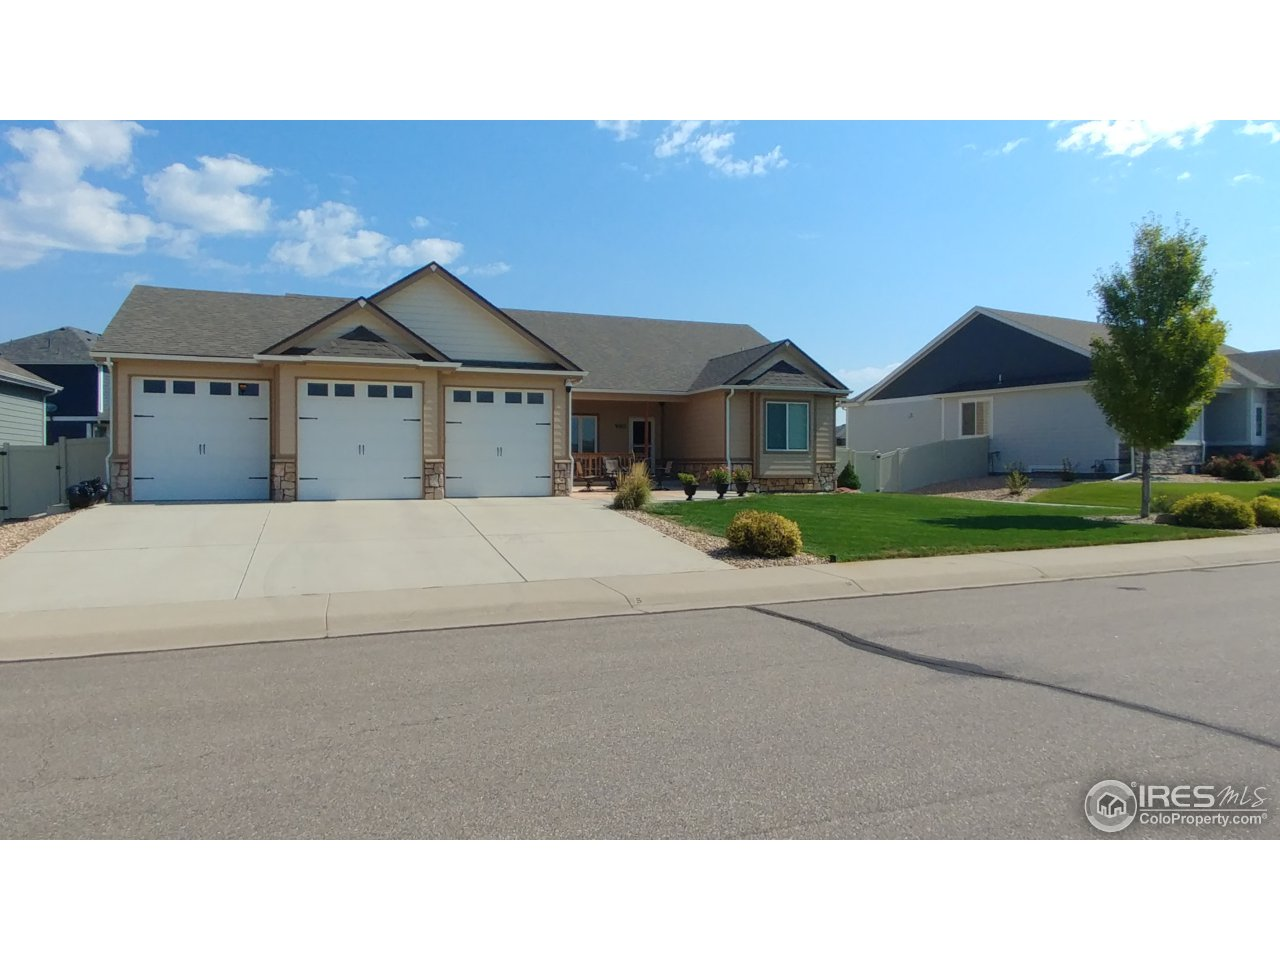 9027 19th St Rd, Greeley CO 80634